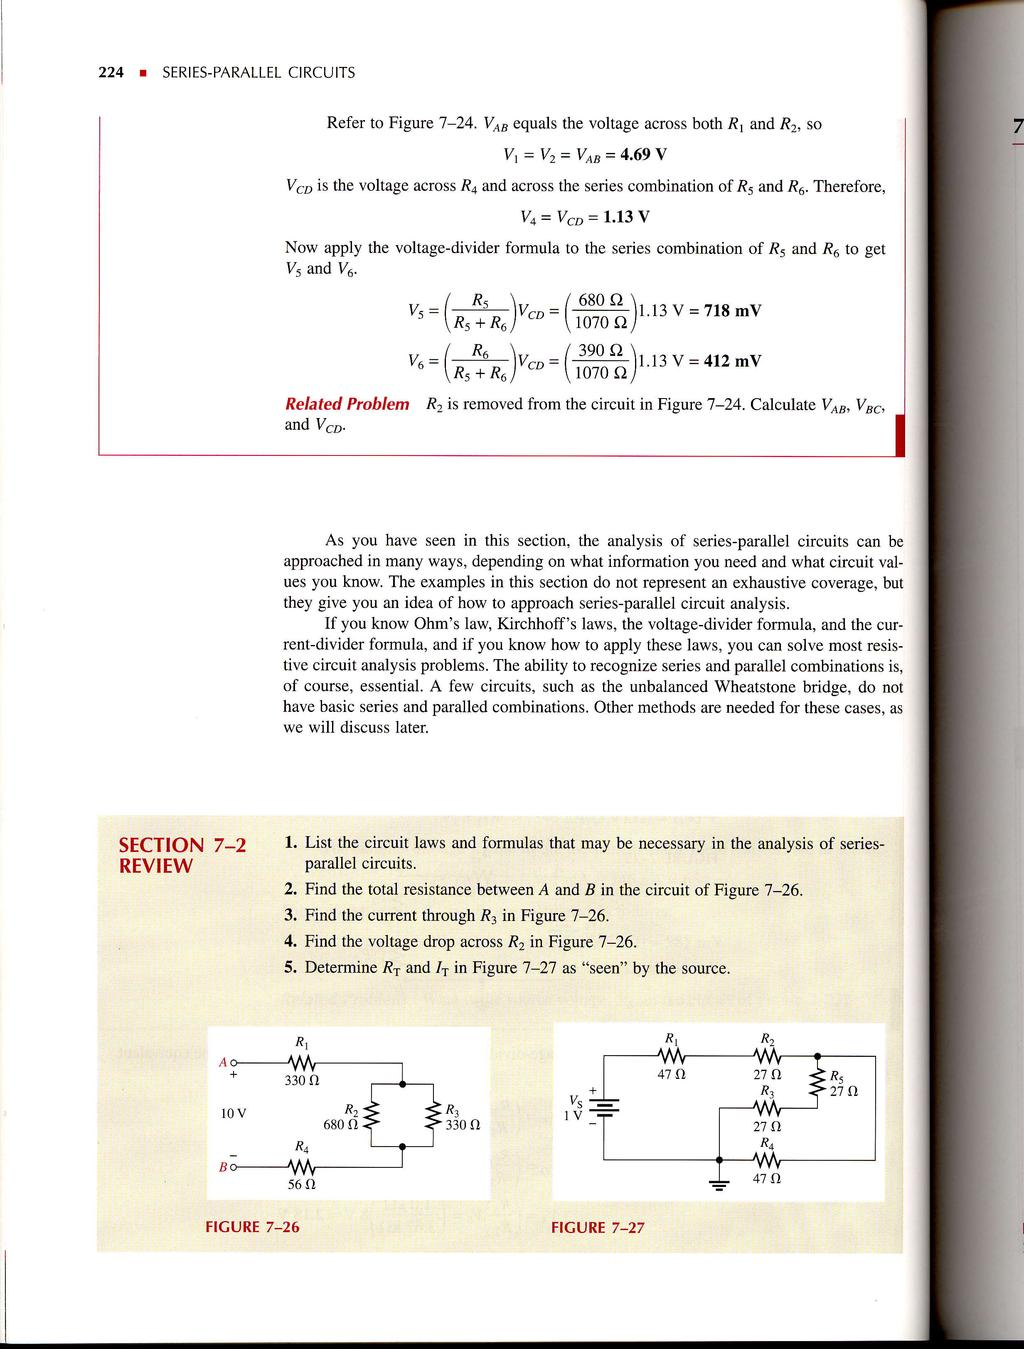 Seriesparallel Circuits Pdf Current Divider 224 R Series Parallel Refer To Figure L 24 Vab Equals The